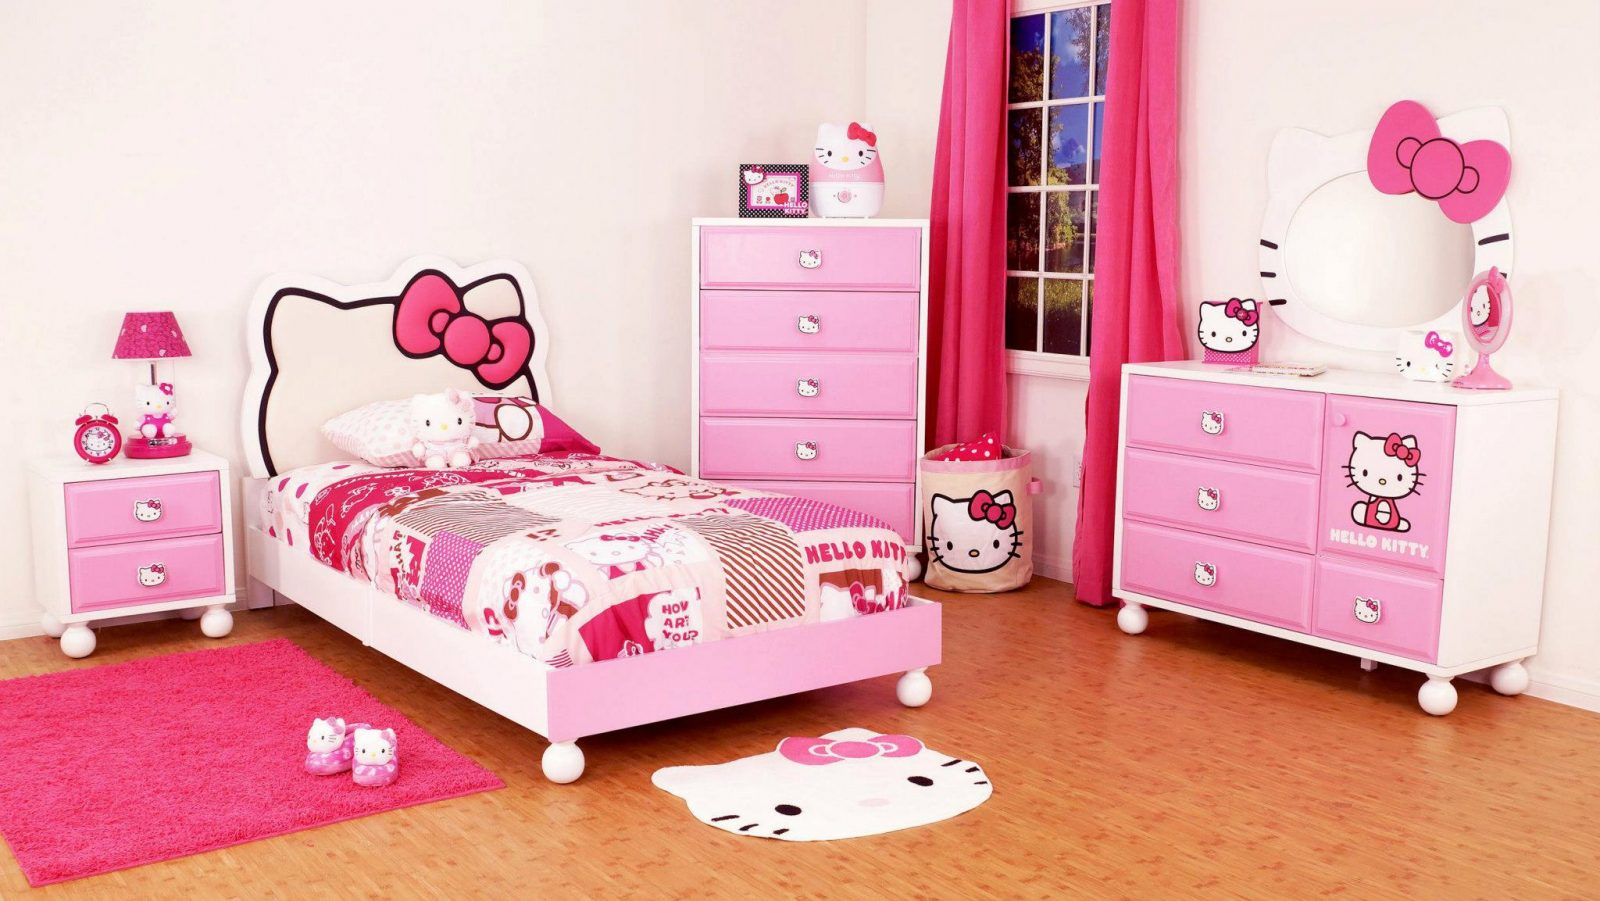 Habitaci n de hello kitty para ni as im genes y fotos - Dormitorio para nina ...